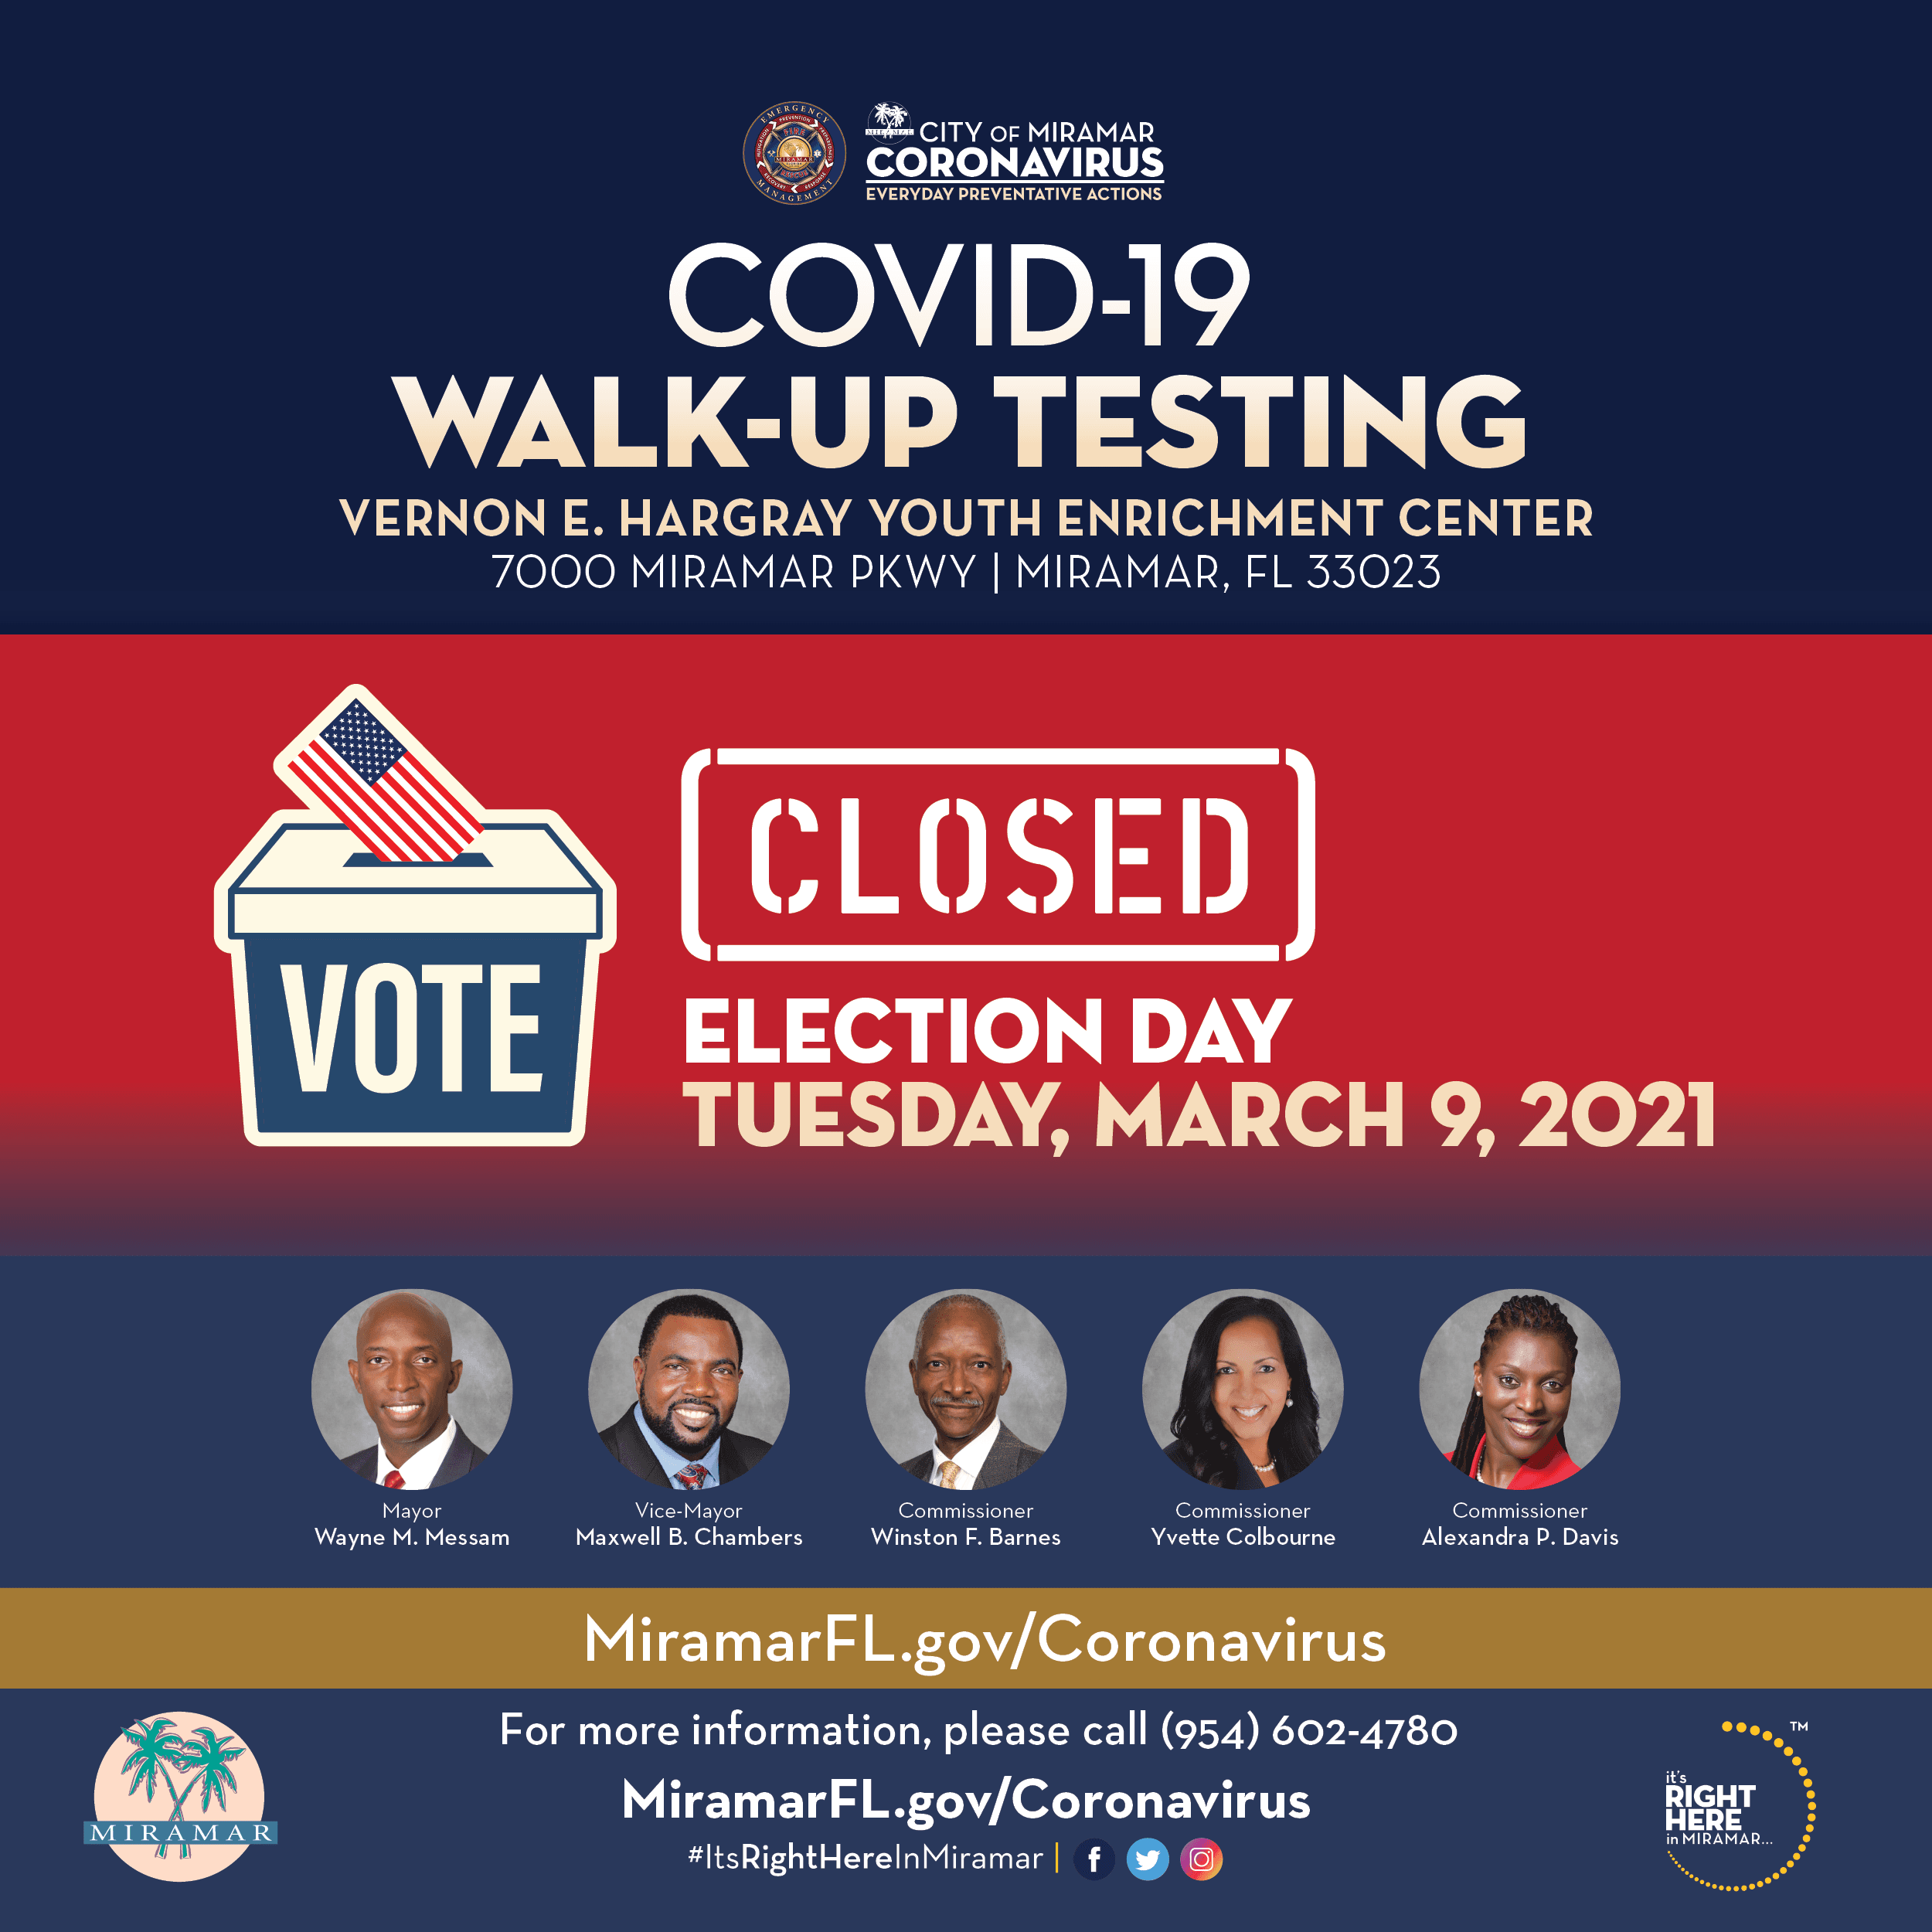 Covid-19 Walk Up Testing Site at YEC Closed on Election Day March 9